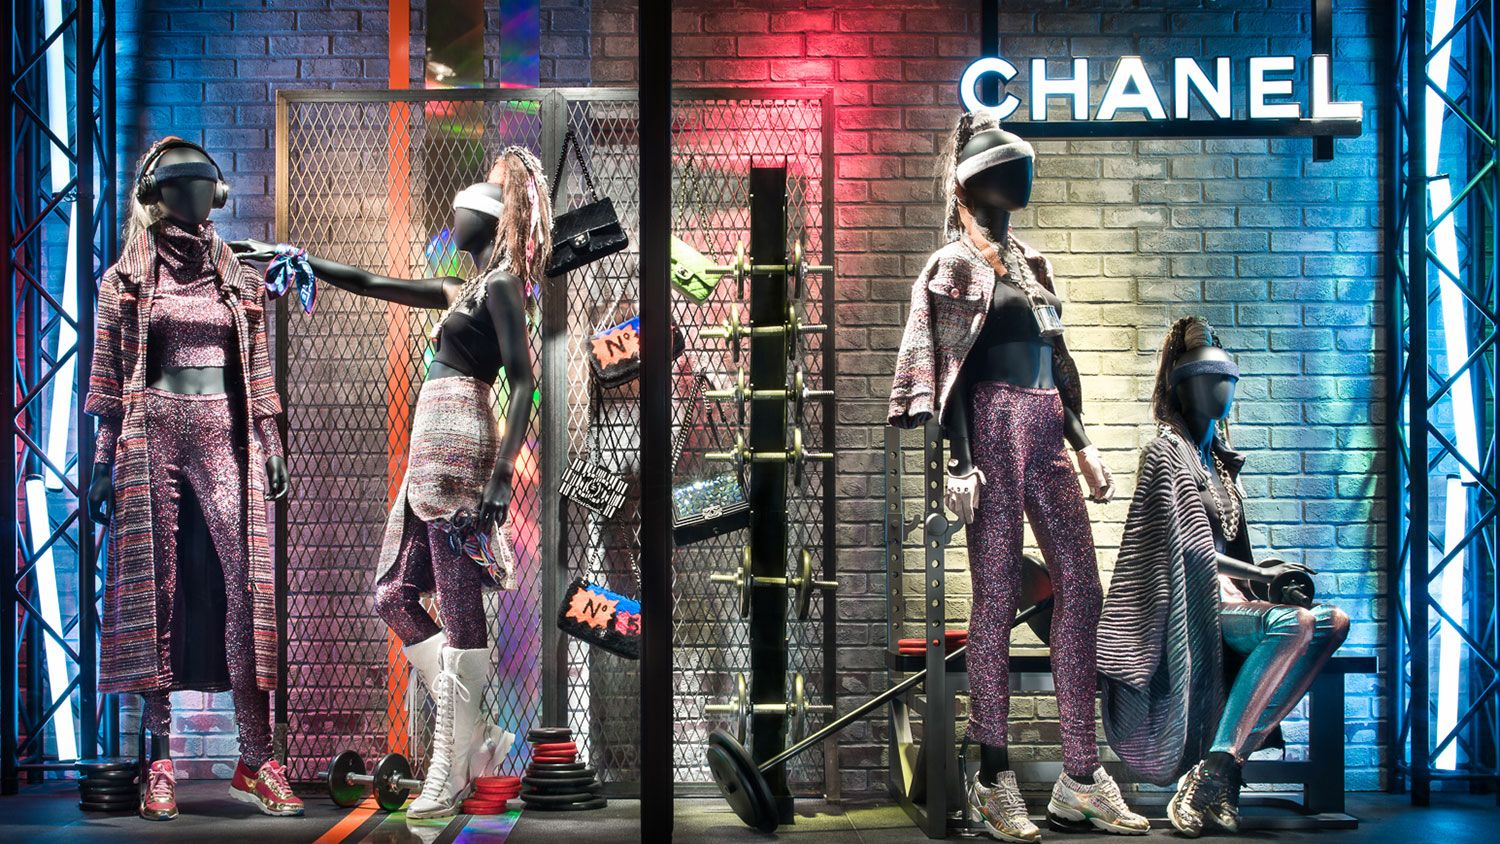 Bergdorf Goodman Brings The Chanel Gym To Life